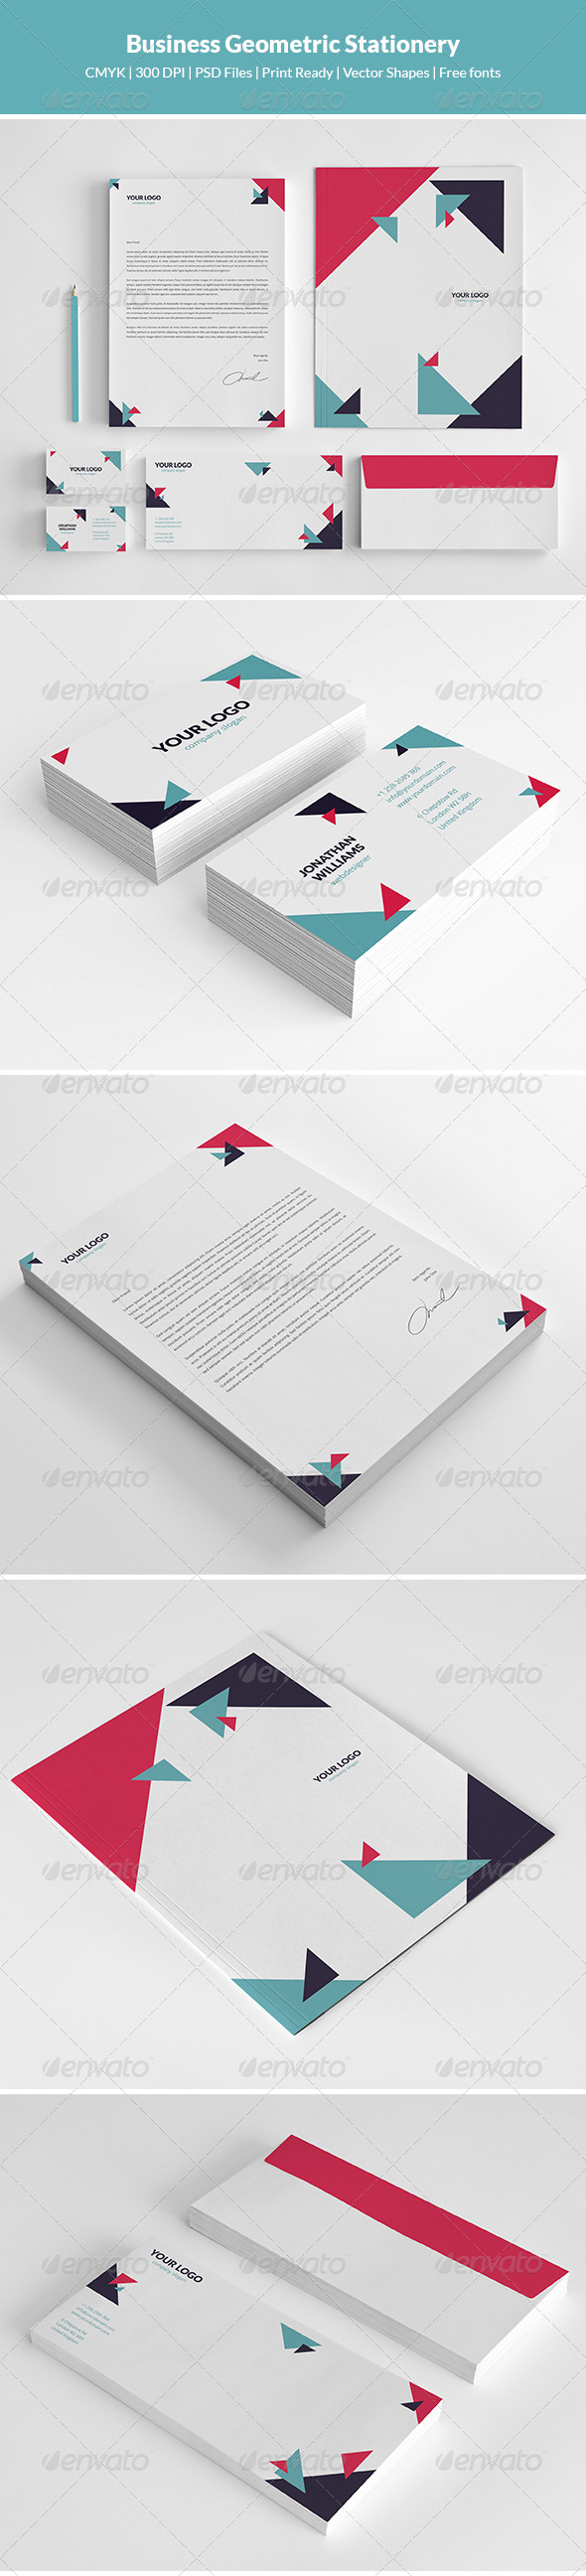 GraphicRiver Business Geometric Stationery 7797772